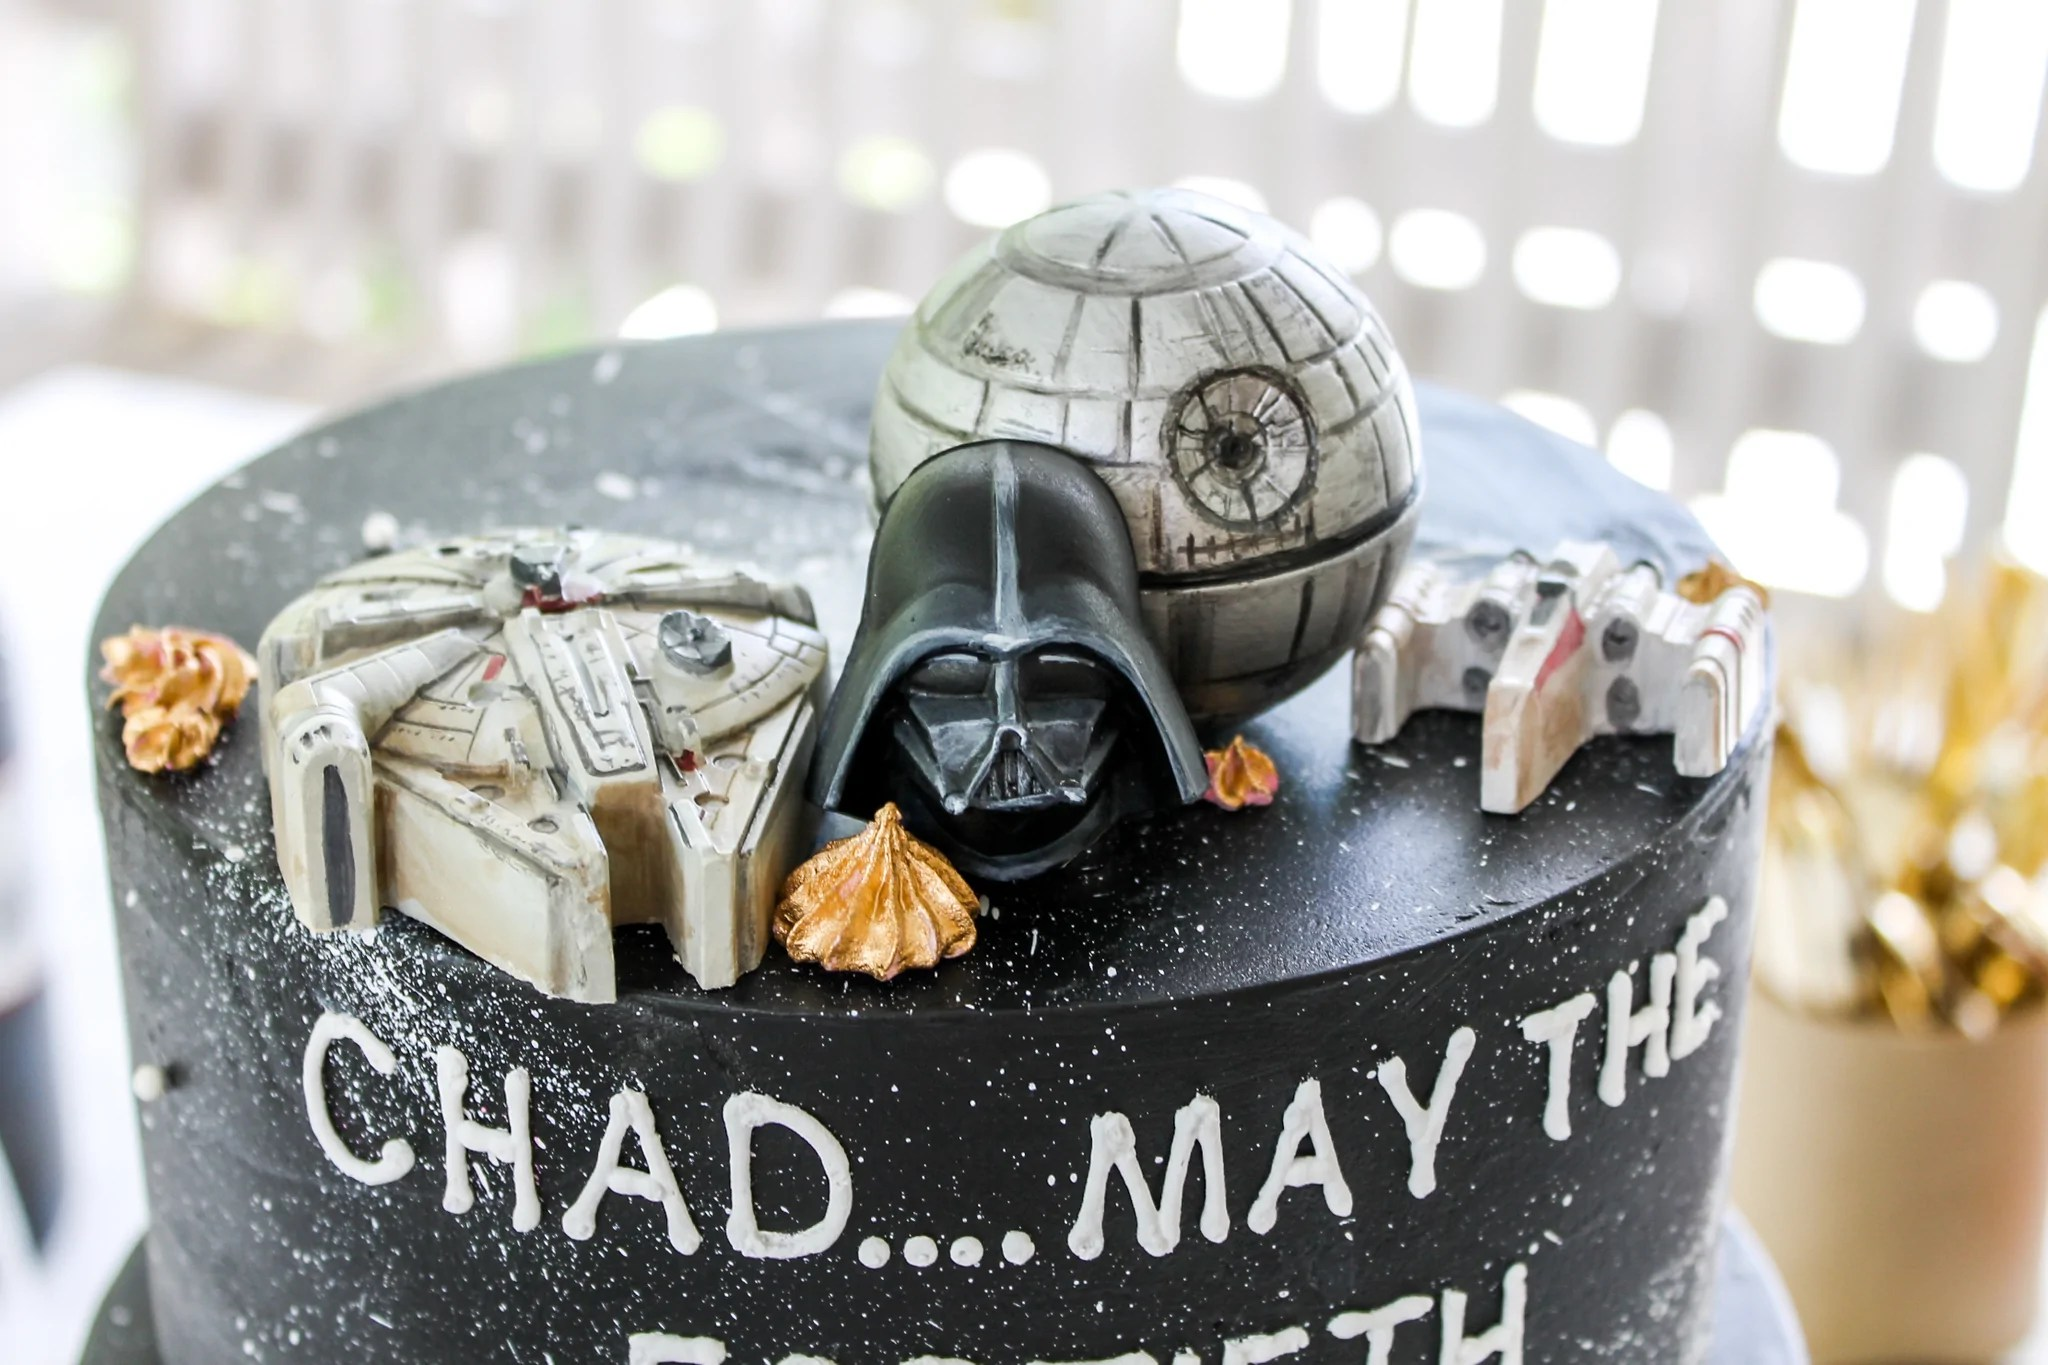 Star Wars Cake Toppers Confection Deception